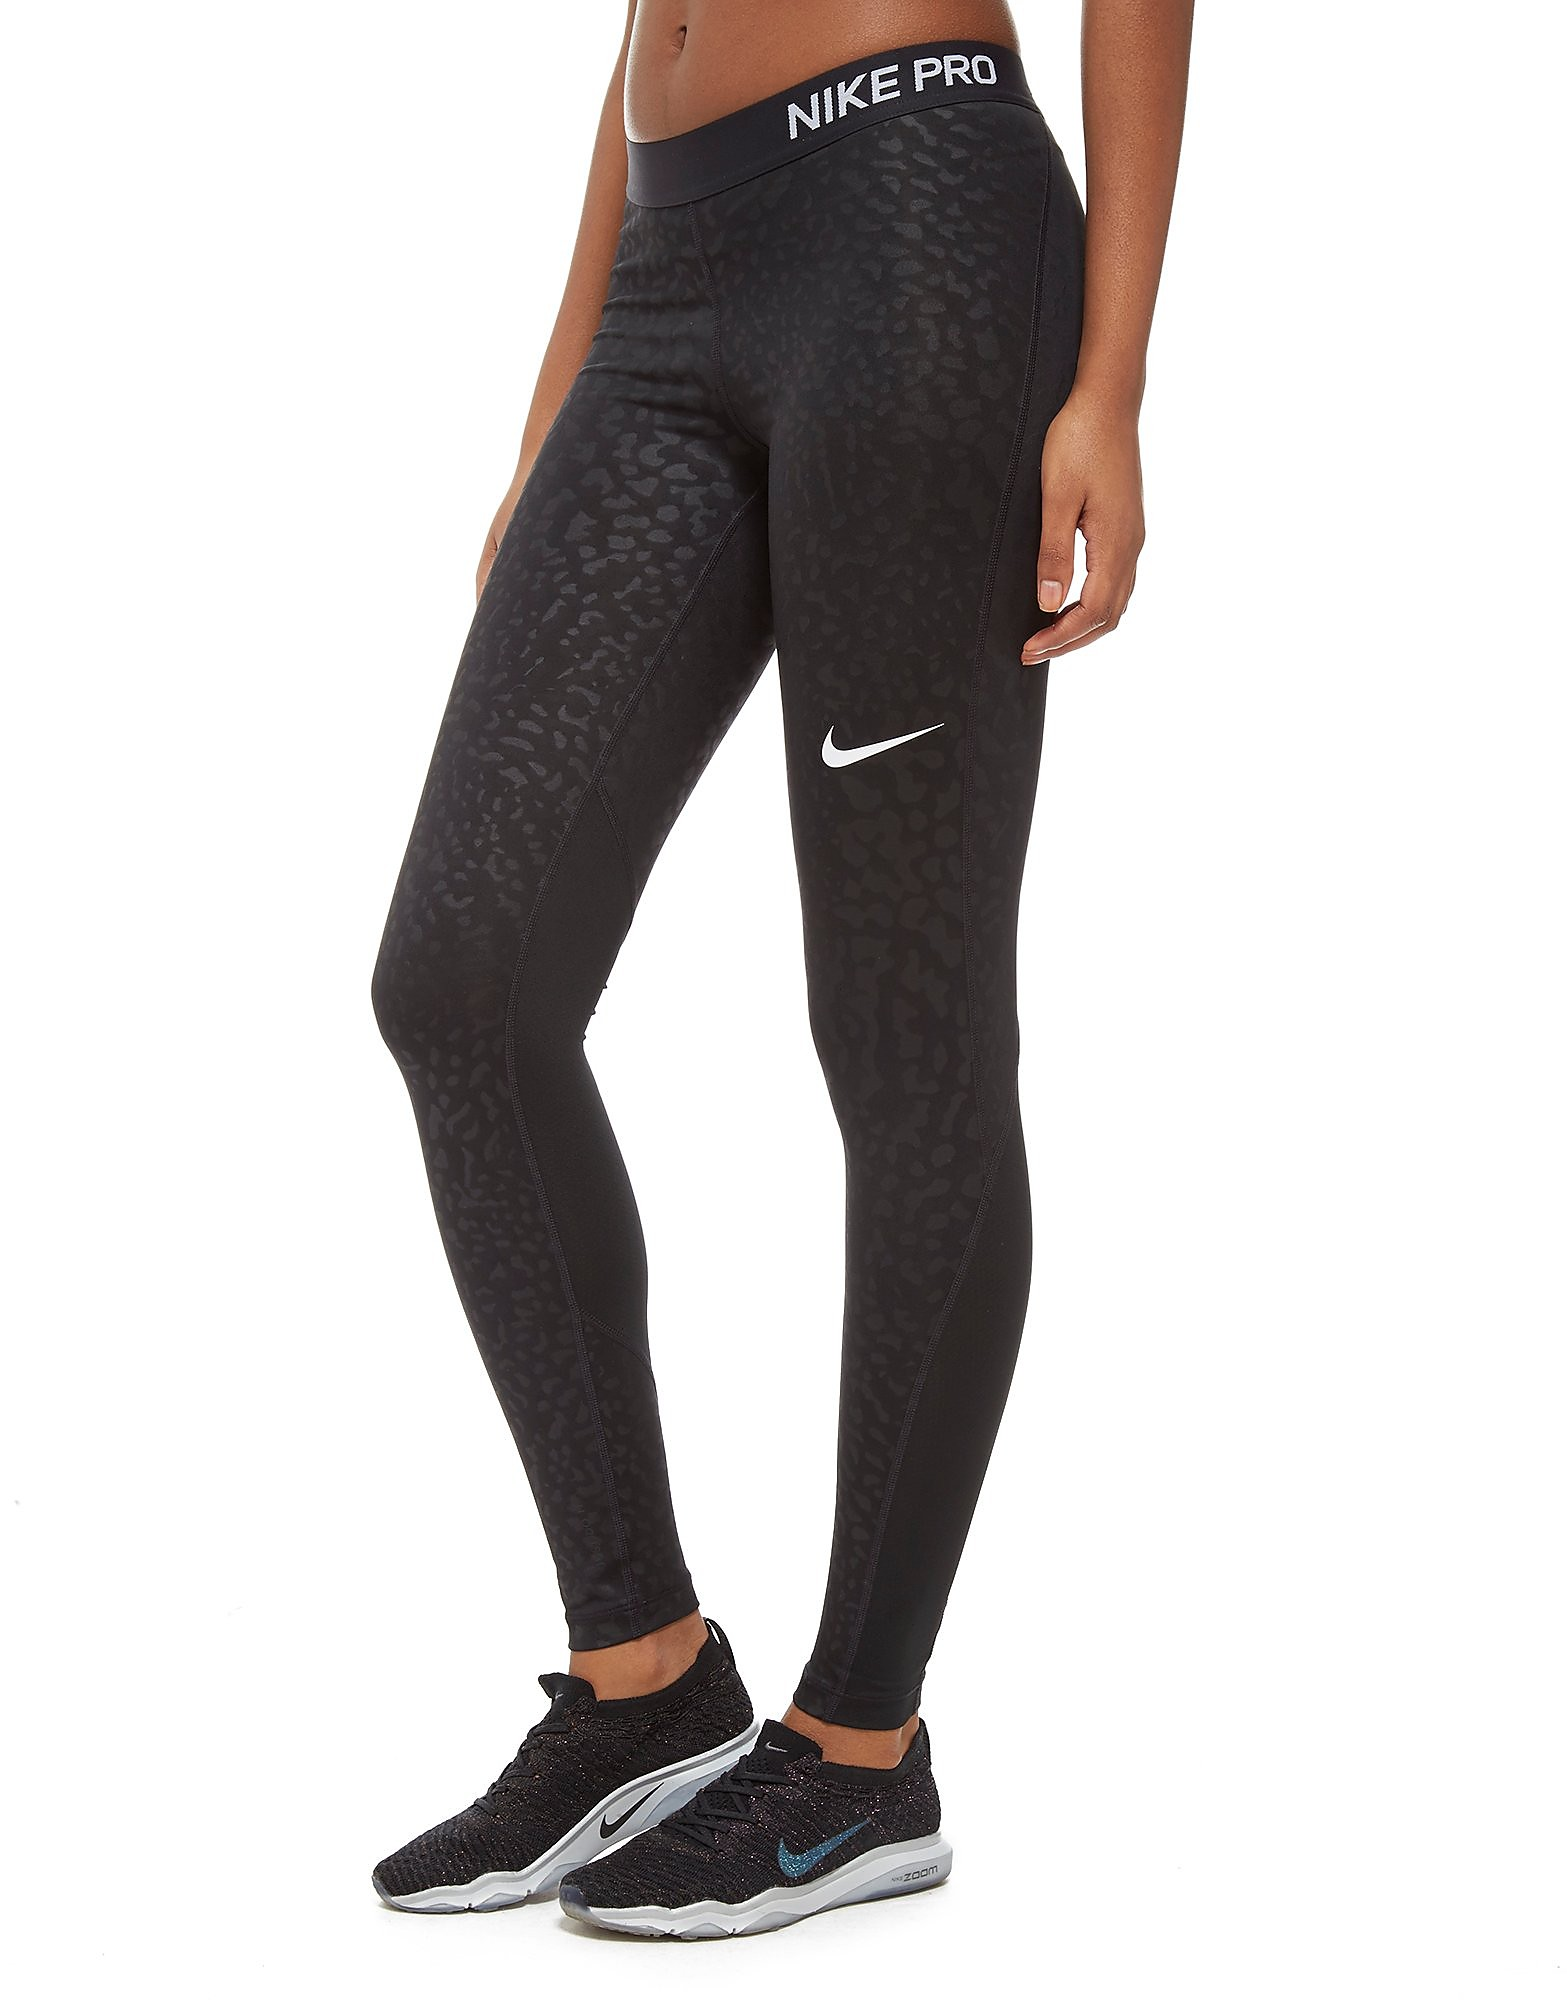 Nike Pro Training Spotted Tights